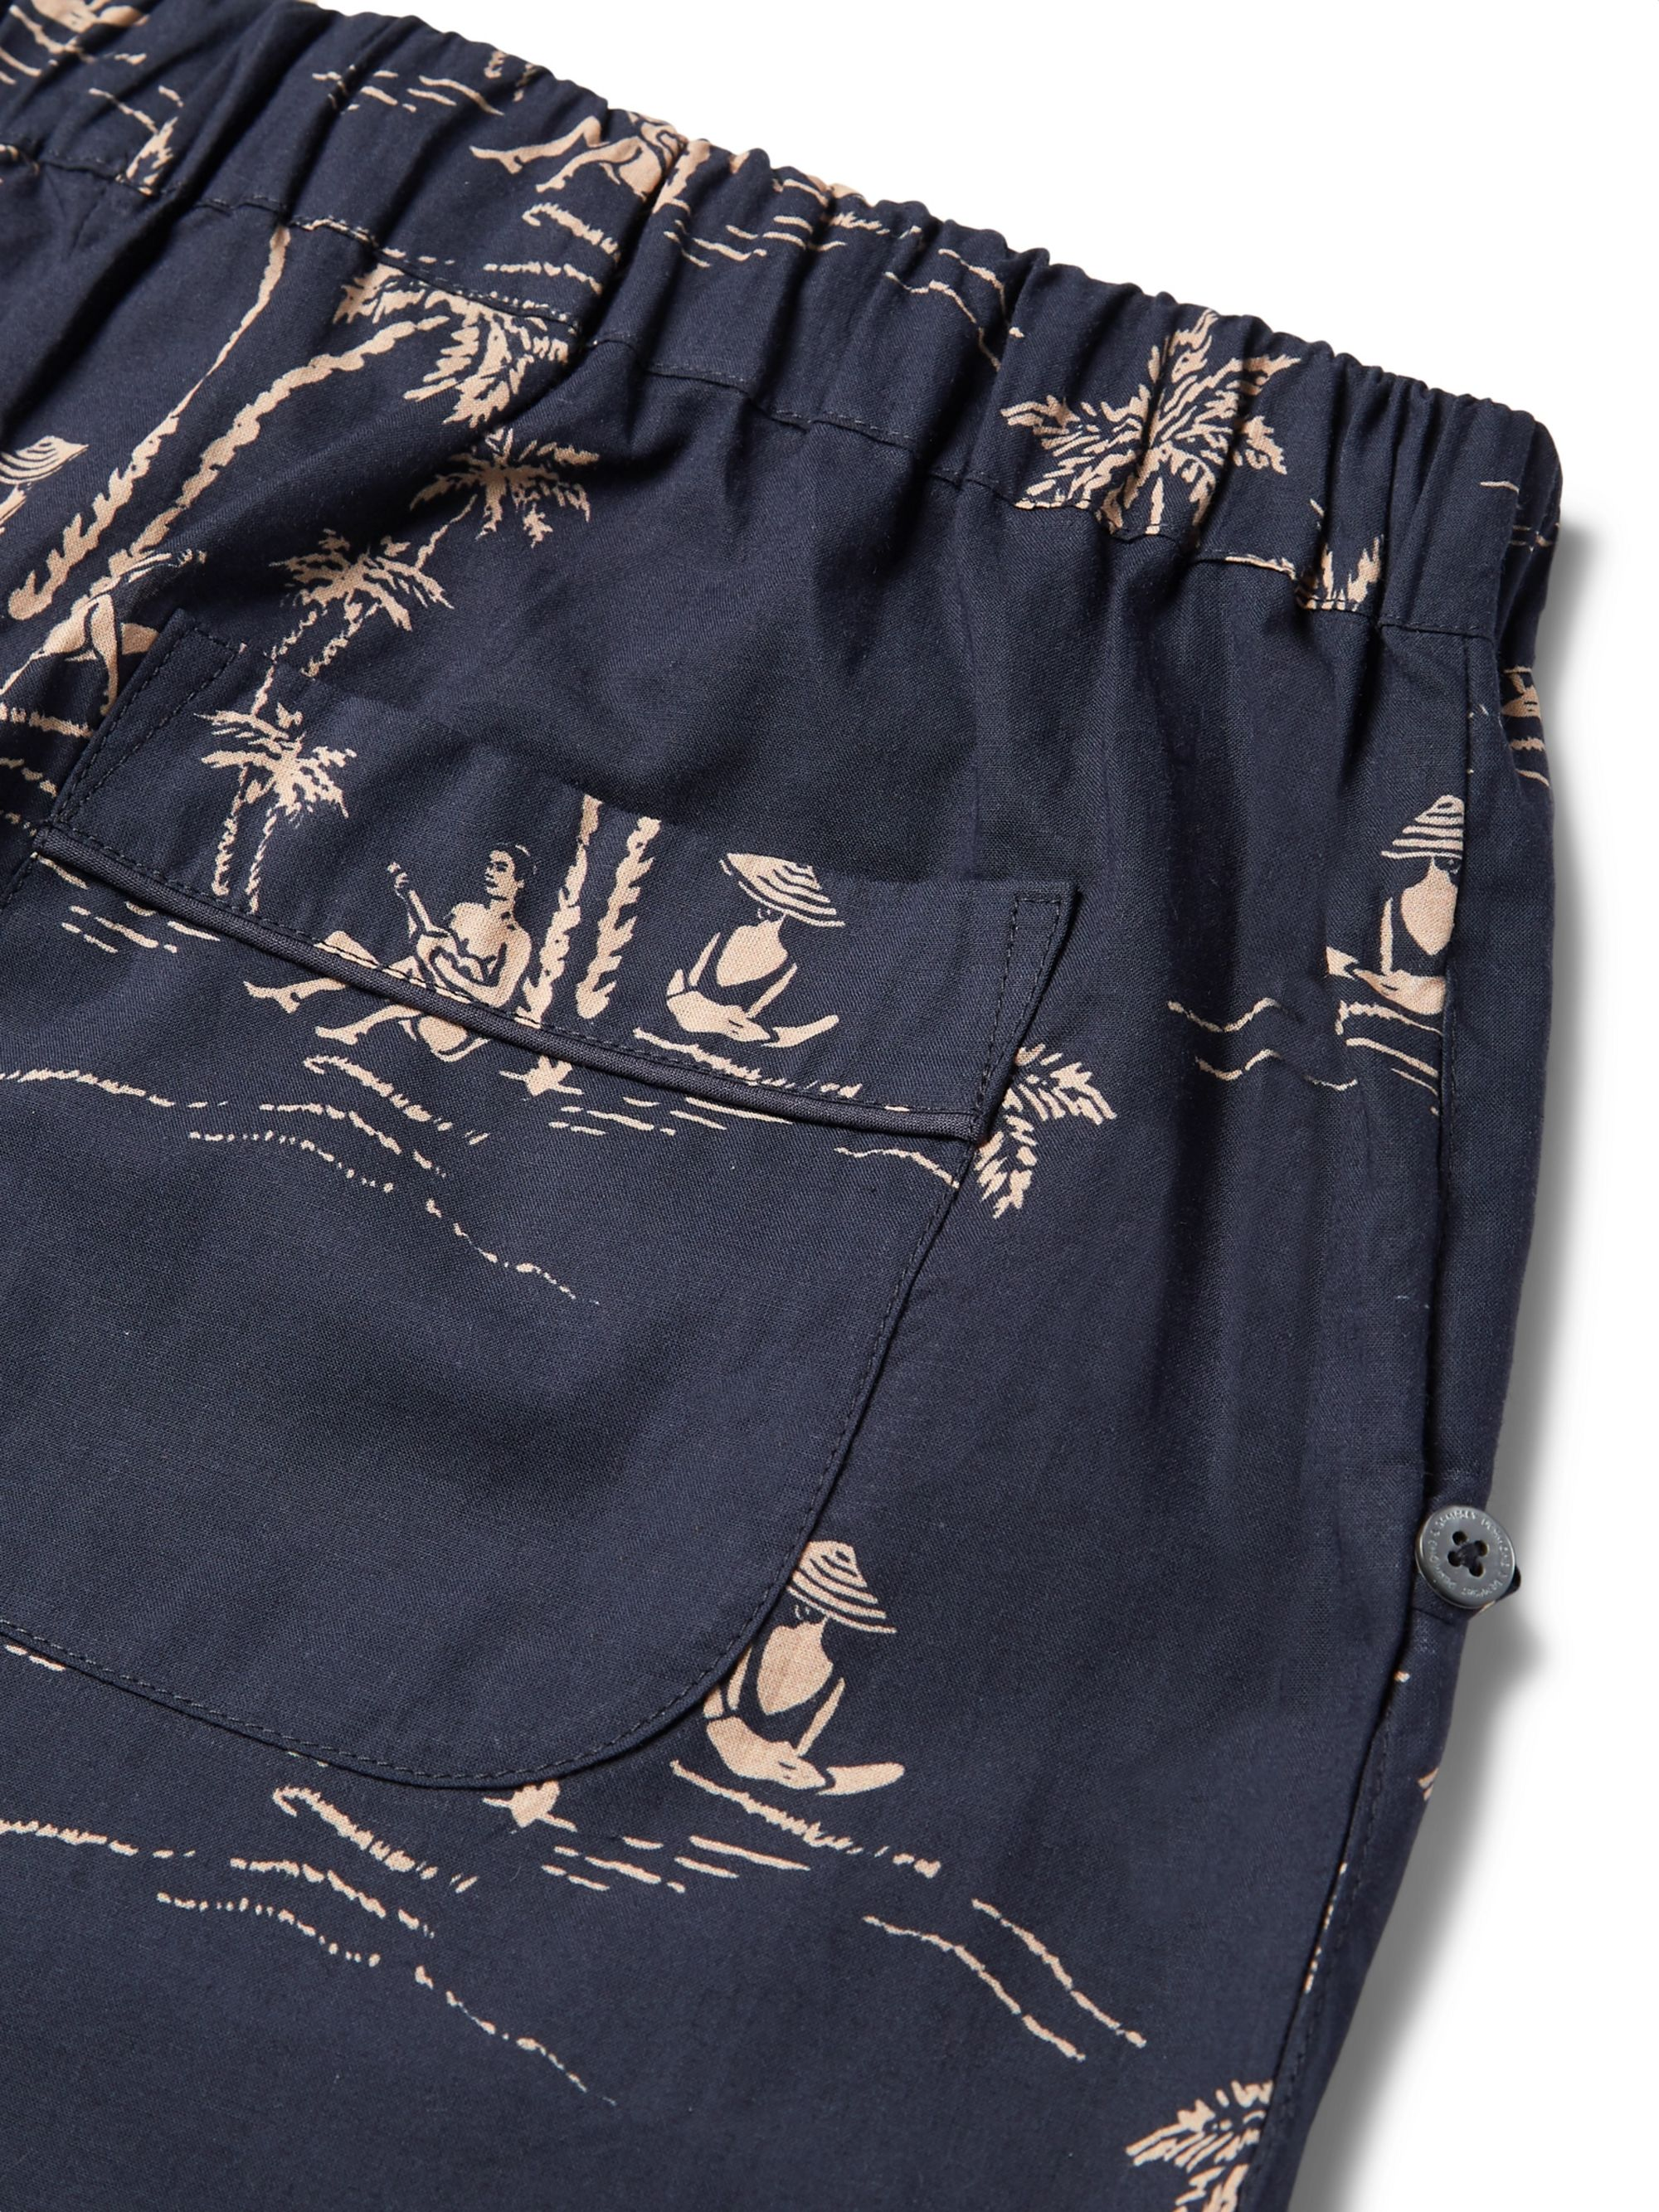 Desmond & Dempsey Printed Cotton Pyjama Shorts